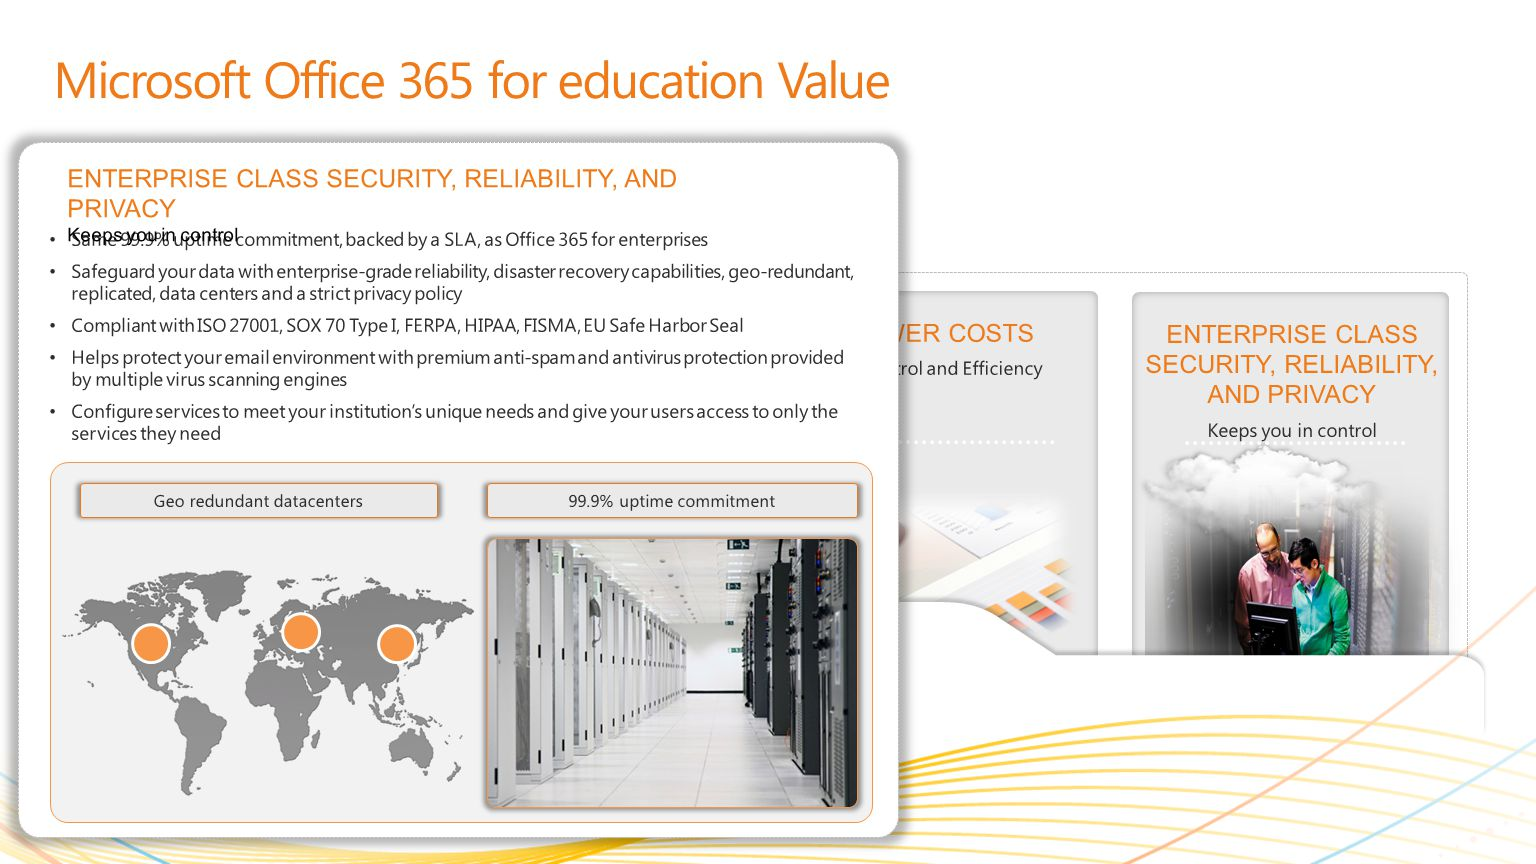 Microsoft Office 365 for education Value